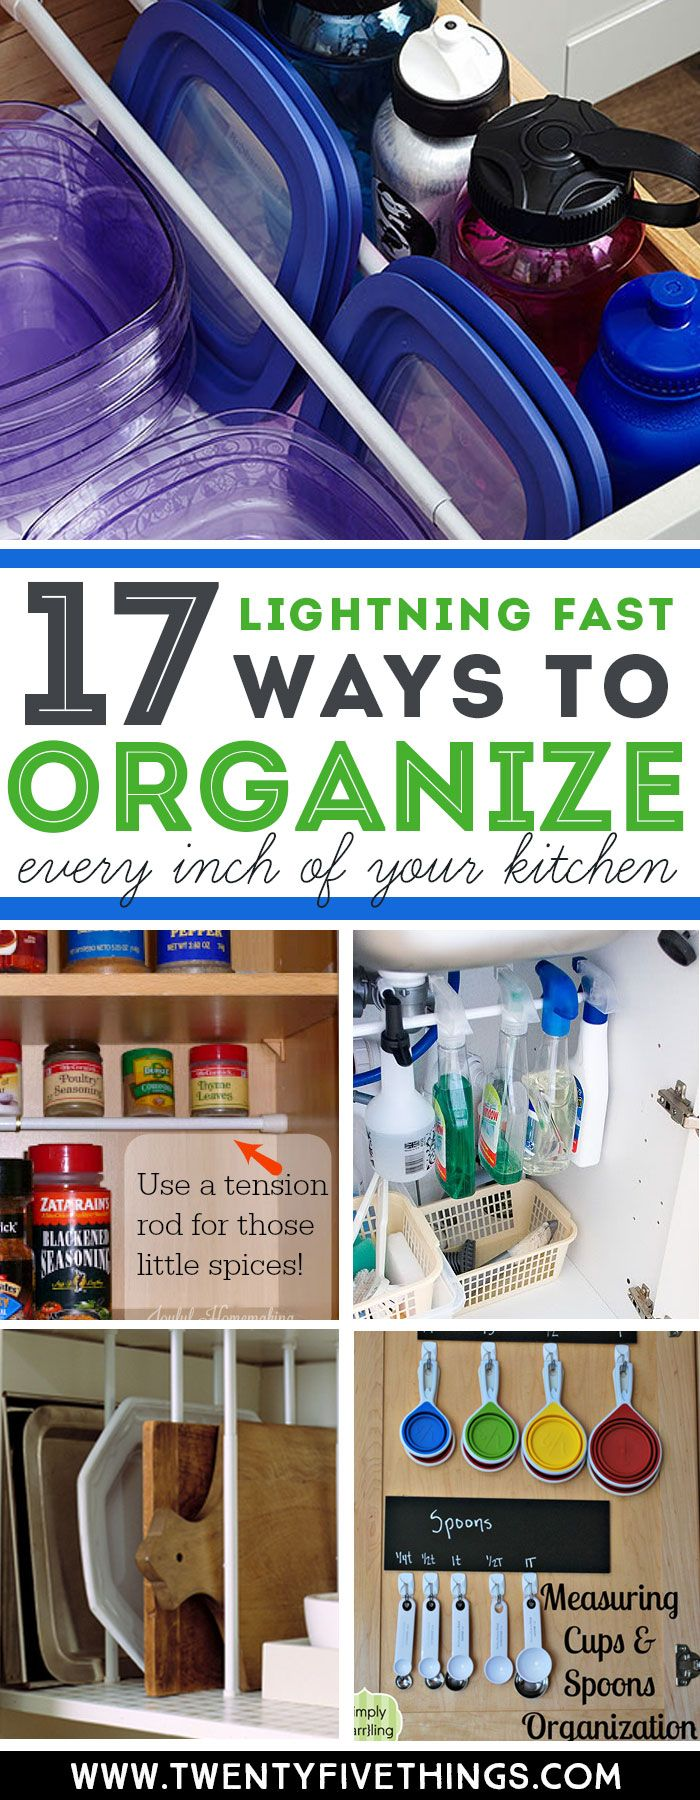 You can organize every inch of your kitchen super-fast with these genius tips. Check out how to use tension rods, command hooks, and file folders for quick and easy kitchen organization. #OrganizationIdeas #kitchen